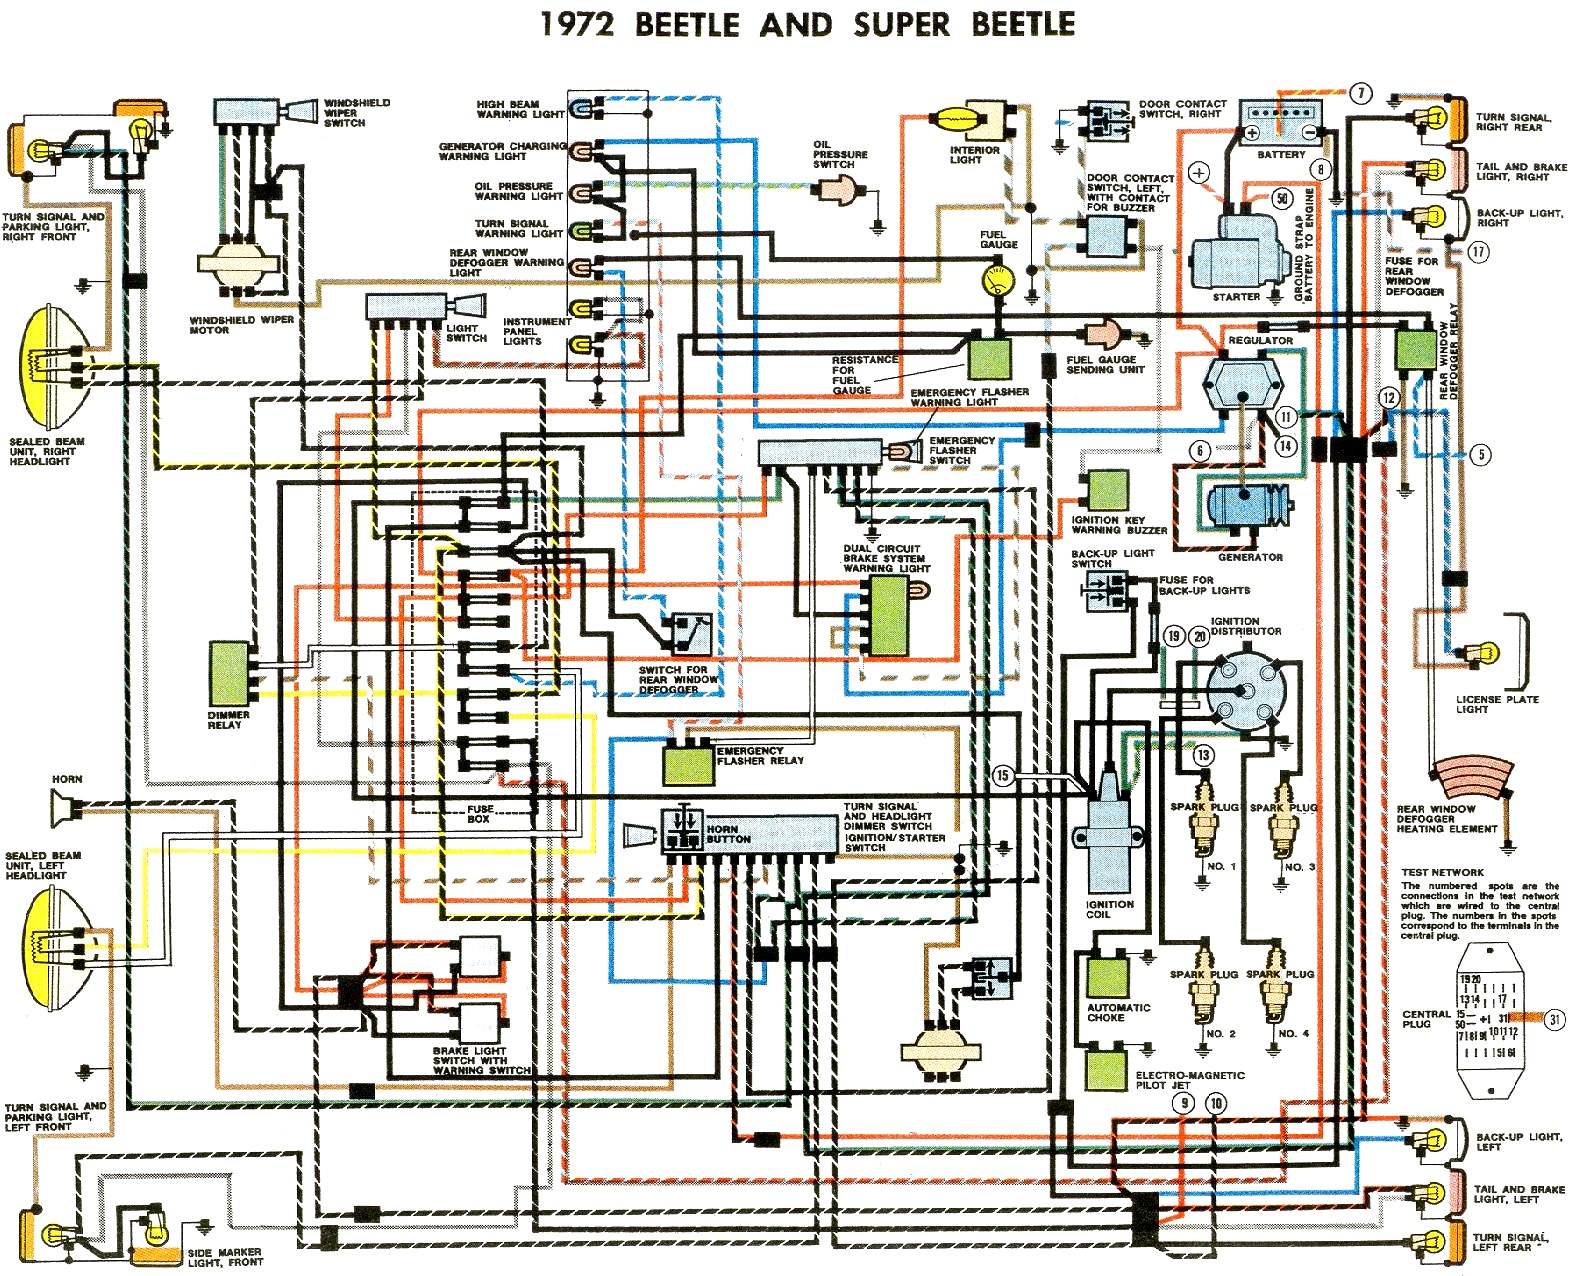 wiring diagram for 1979 vw super beetle 1972 beetle wiring diagram | thegoldenbug.com